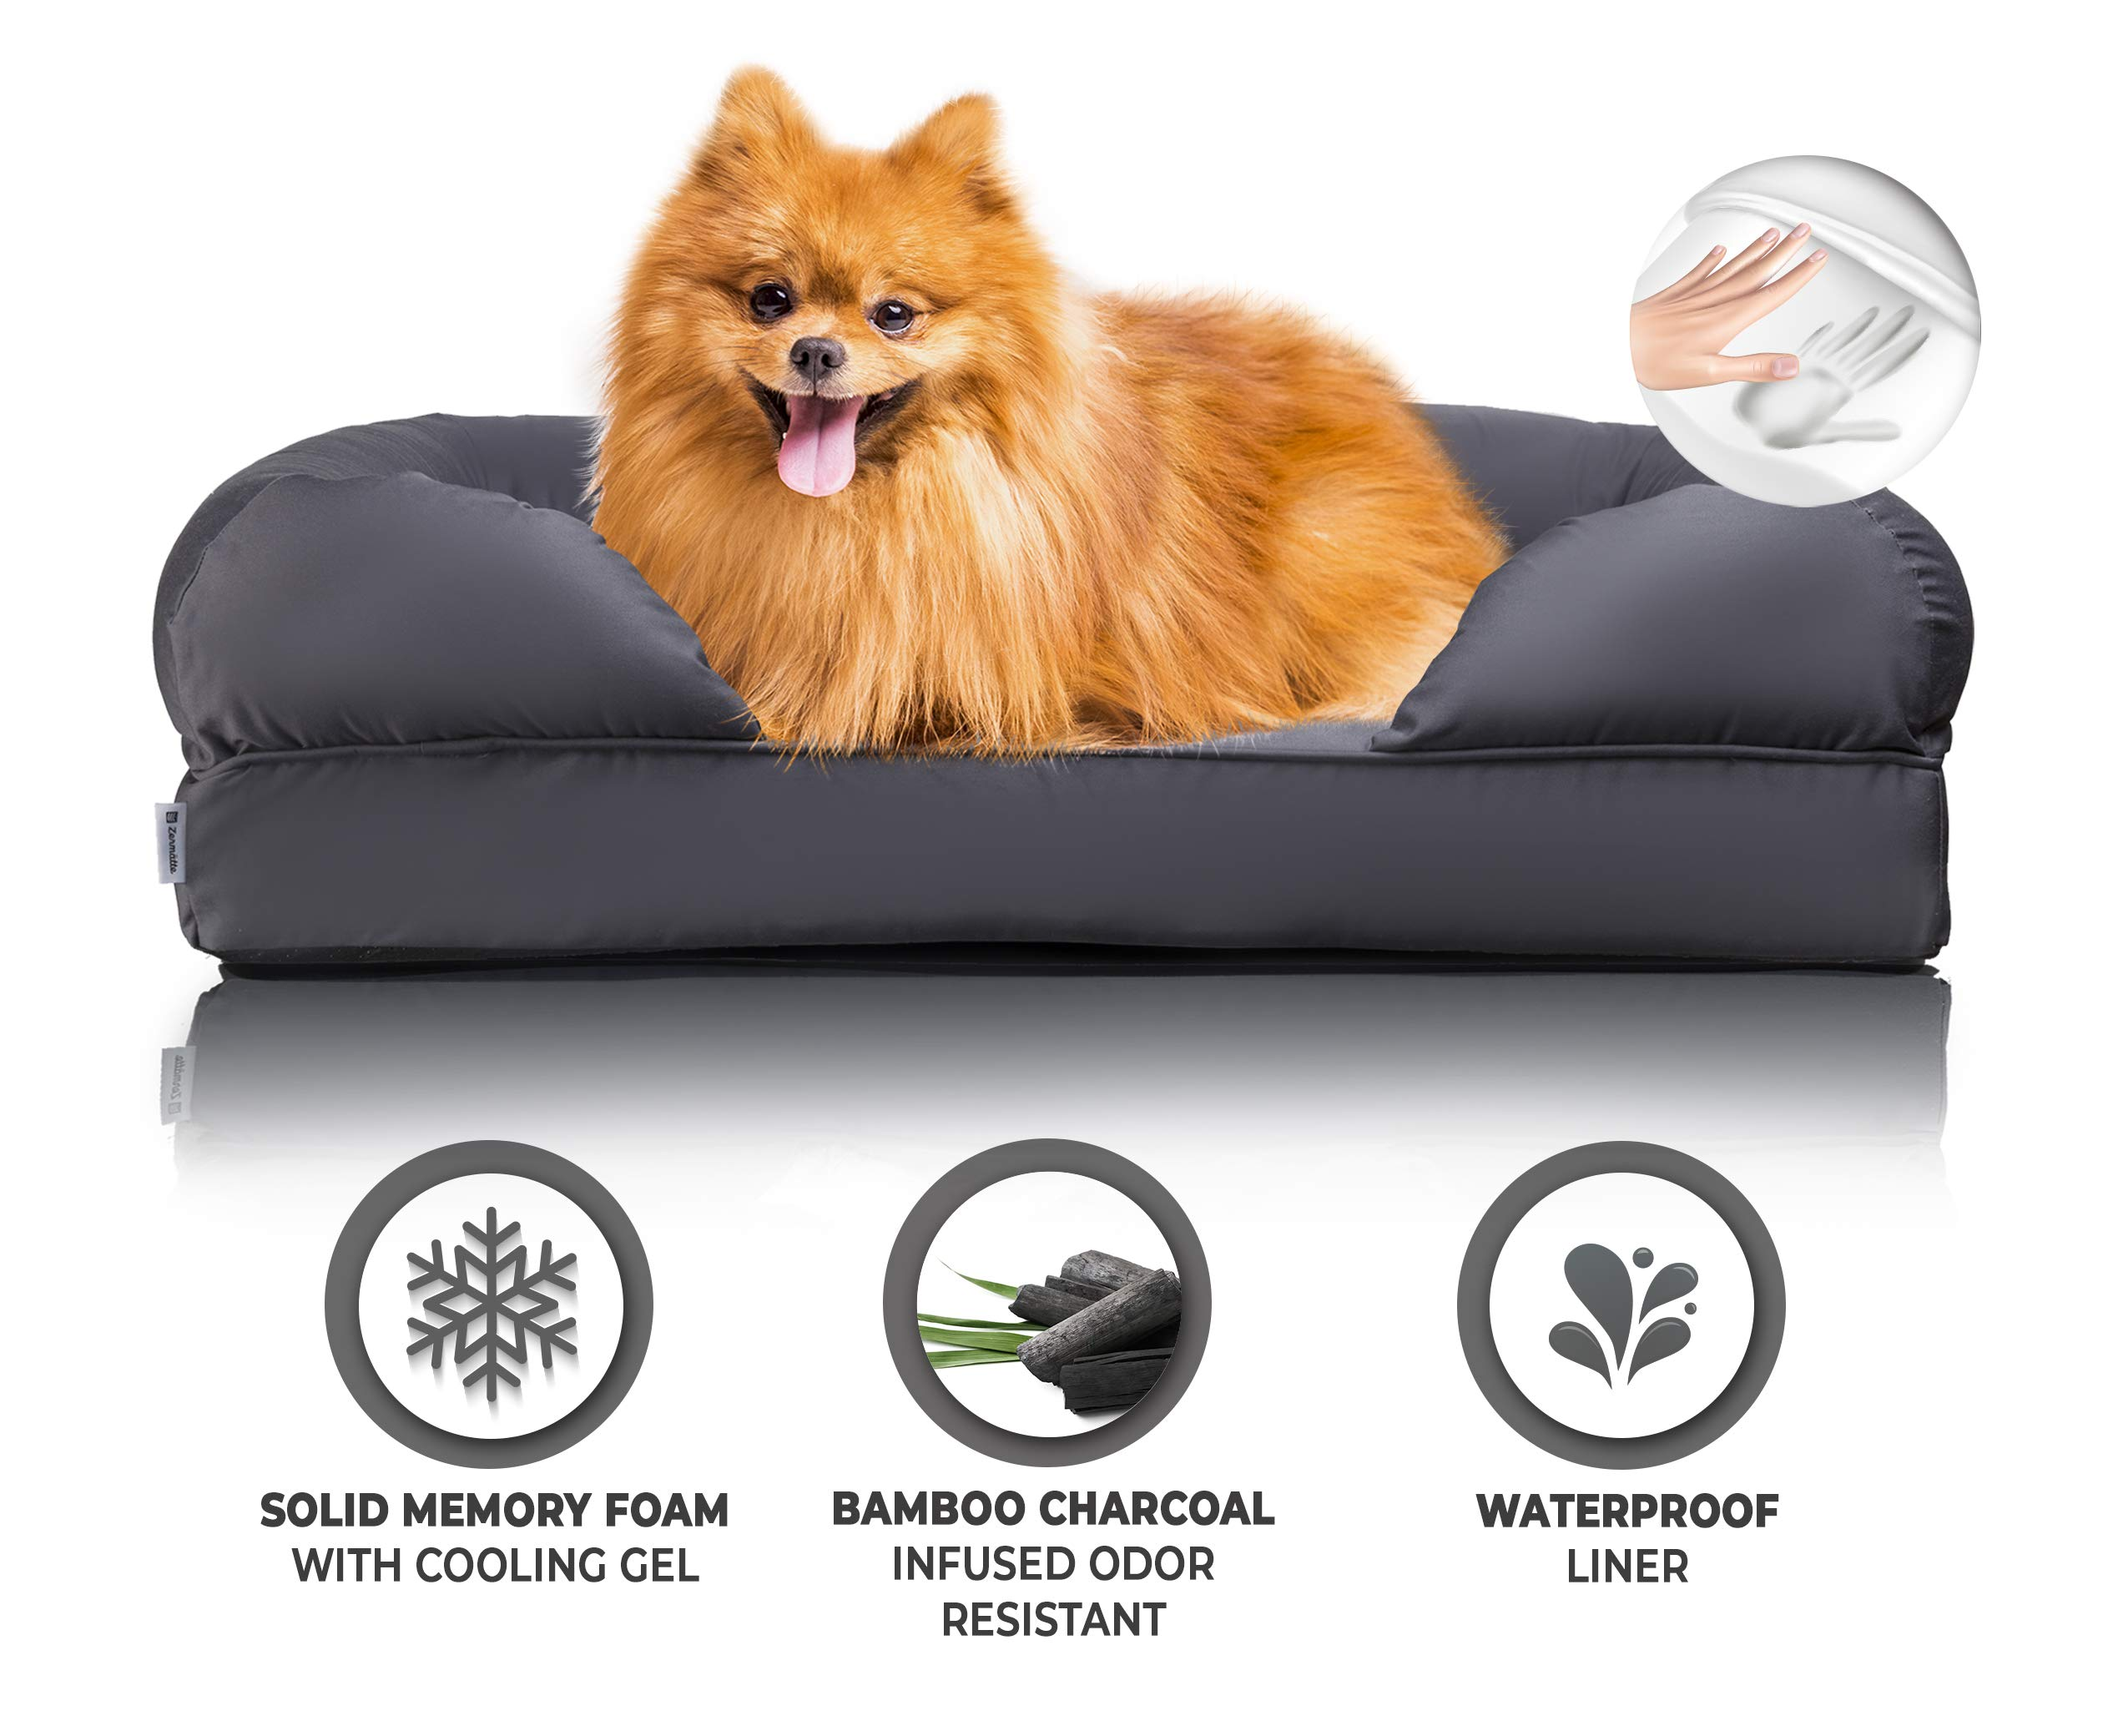 Zermätte Orthopedic Dog Bed - Cooling Gel Memory Foam Pillow Mat with Washable Removable Cover, Waterproof Liner Insert, Charcoal Infused Deodorizing Pad & Elevated Design for Small to Large Breeds by Zermätte